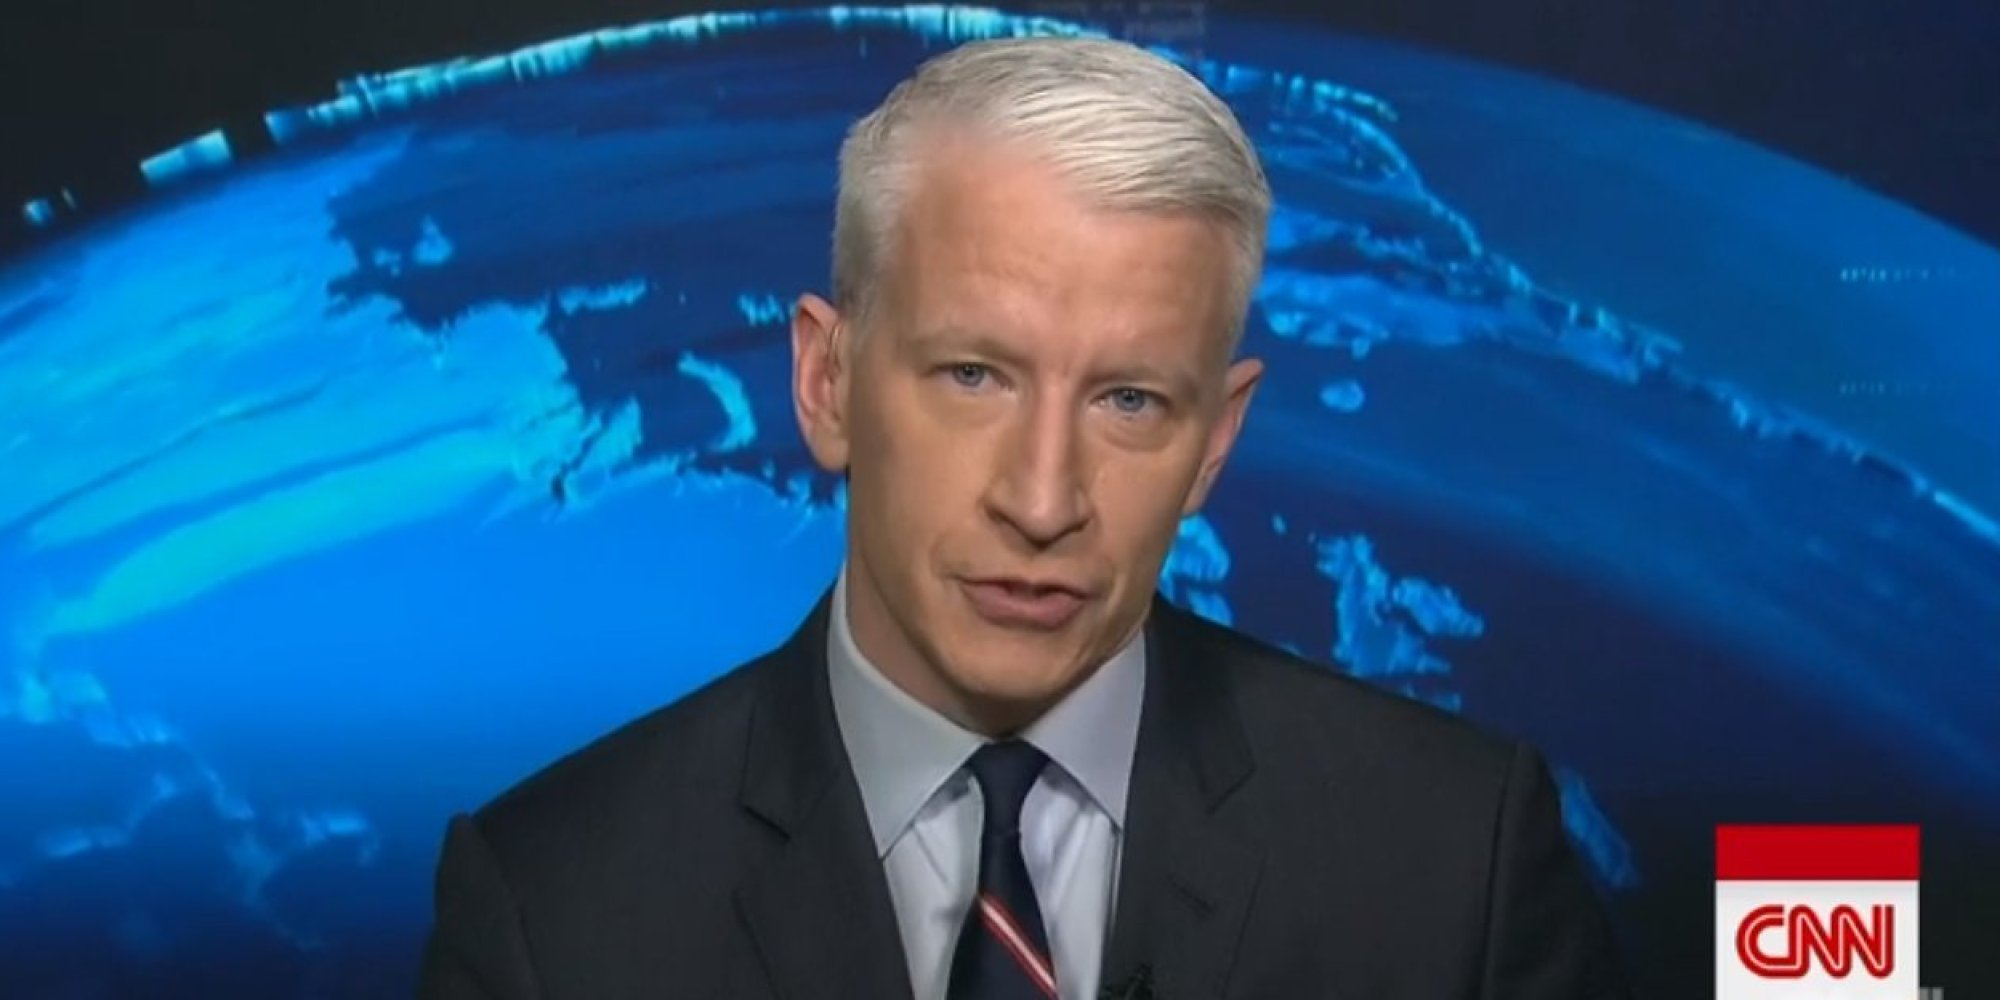 Anderson Cooper Owns Up To No Go Zone Blunders At Cnn